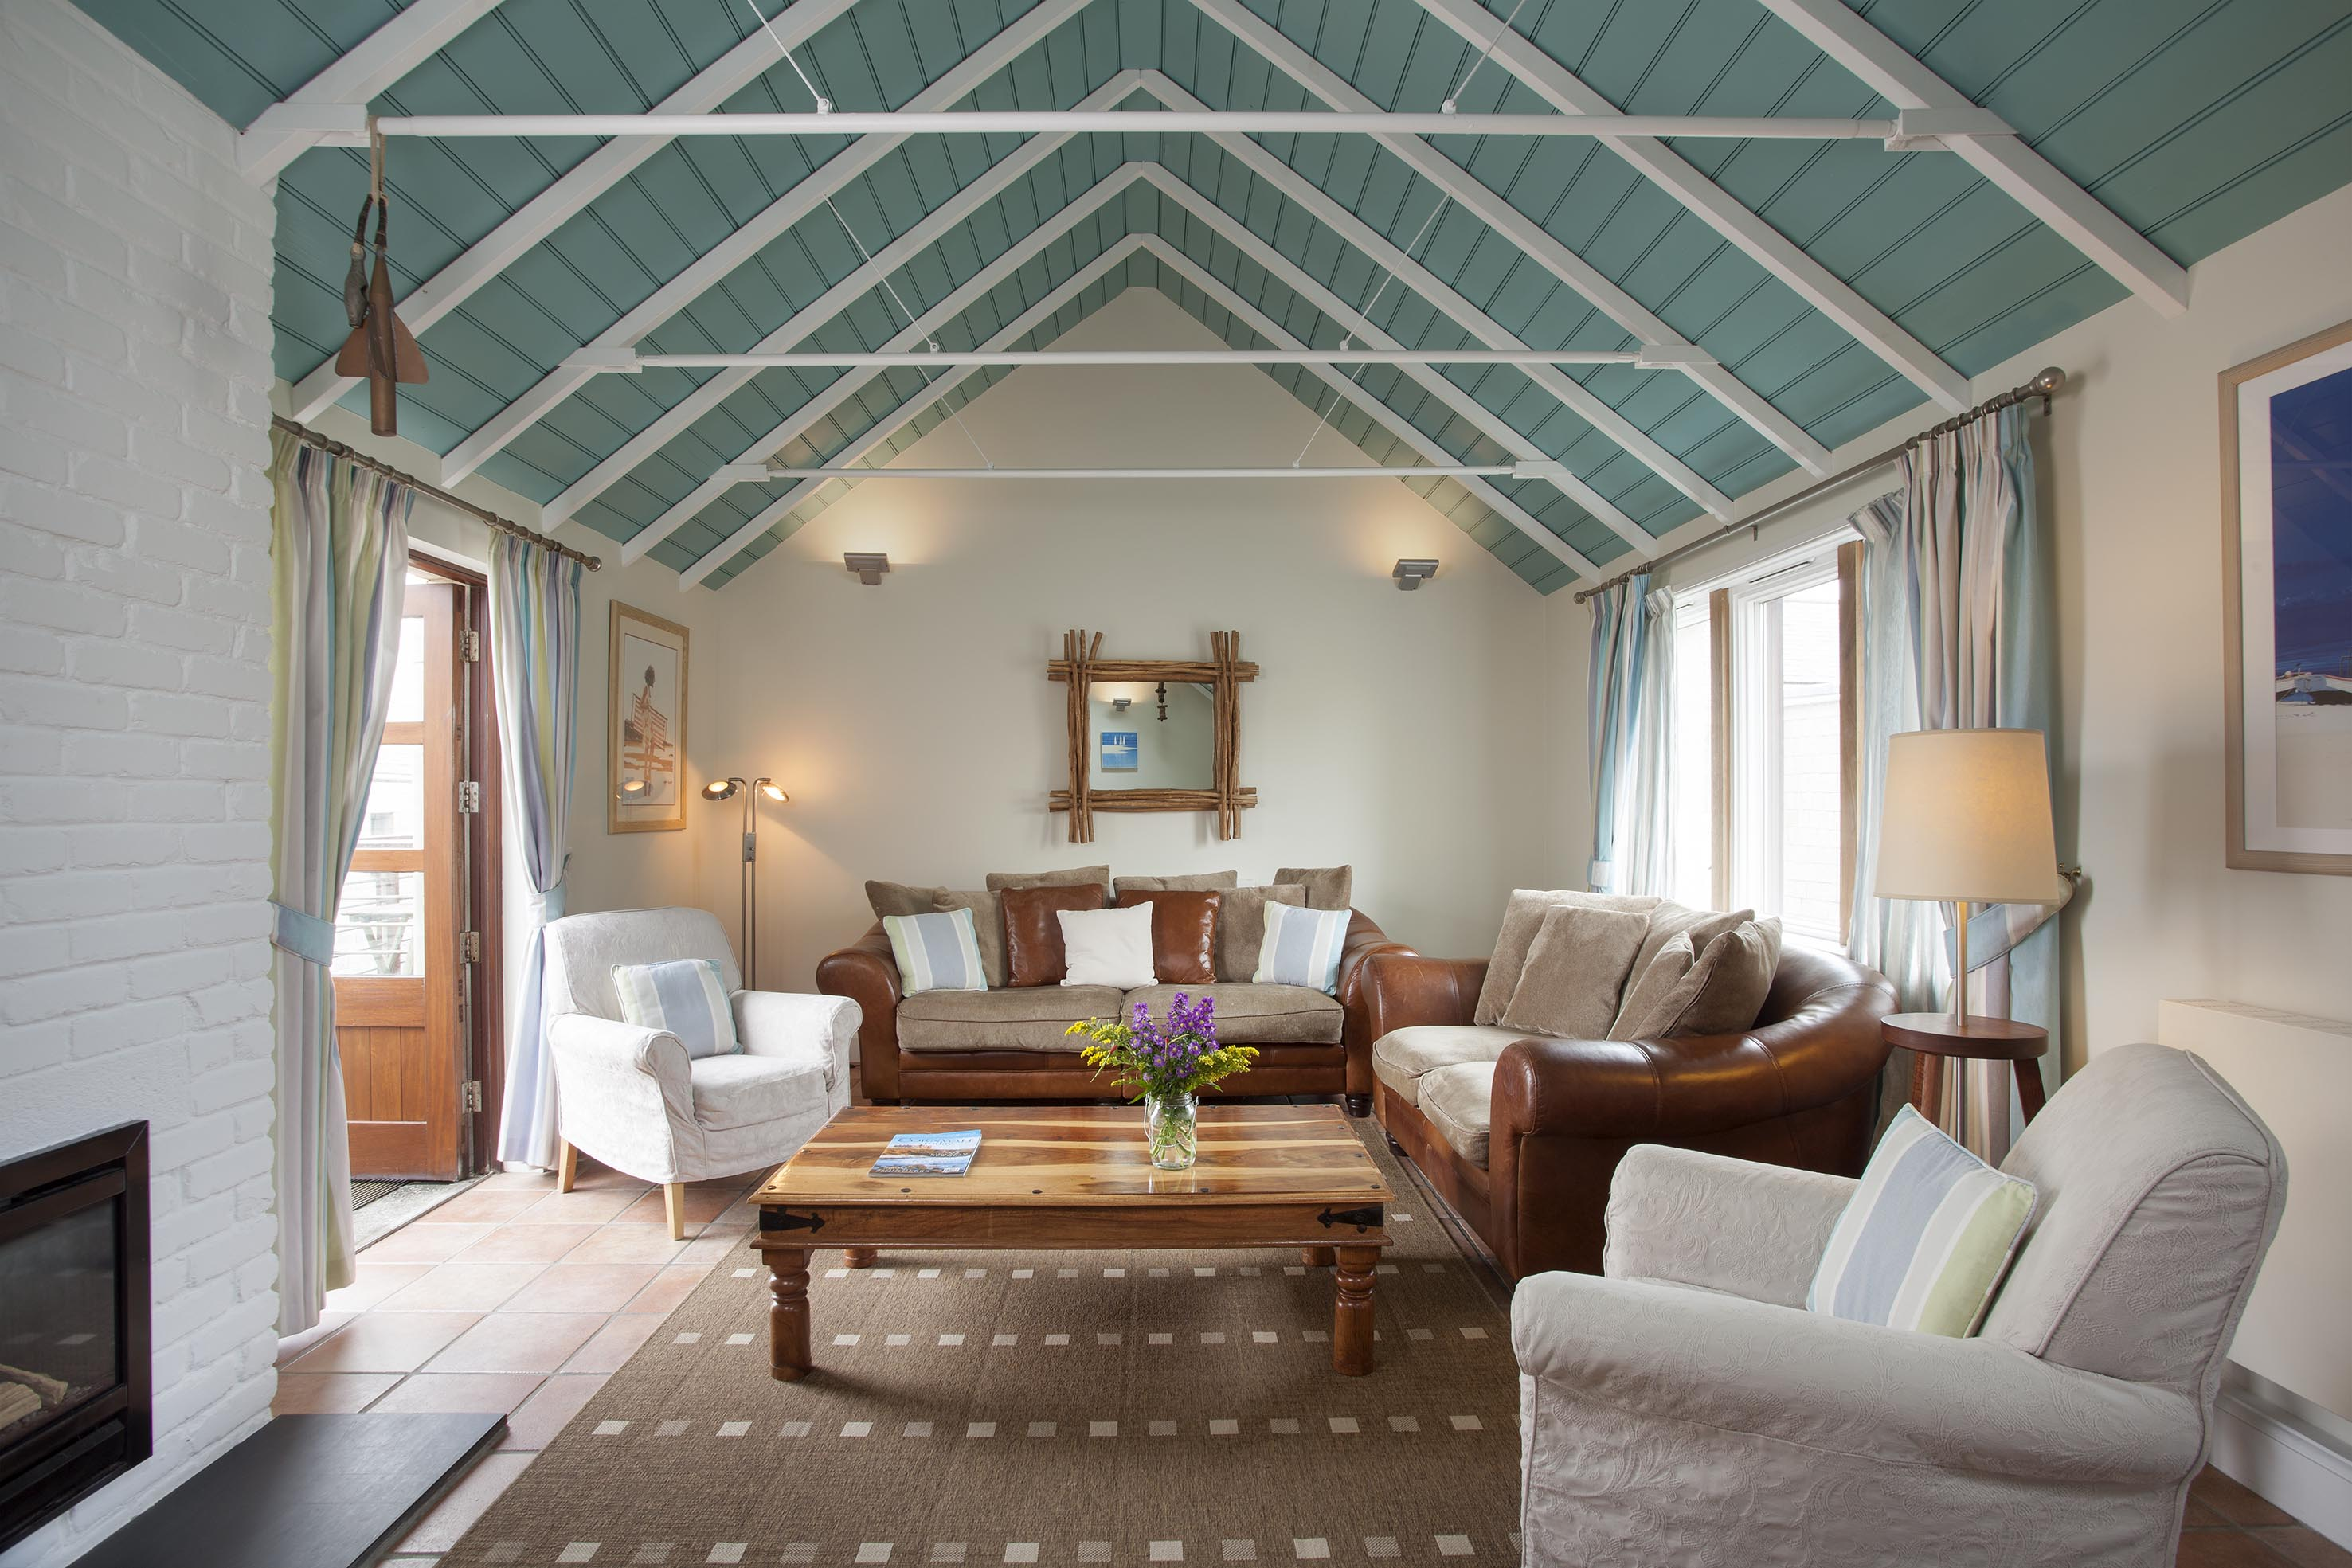 Interior shot of a holiday cottage